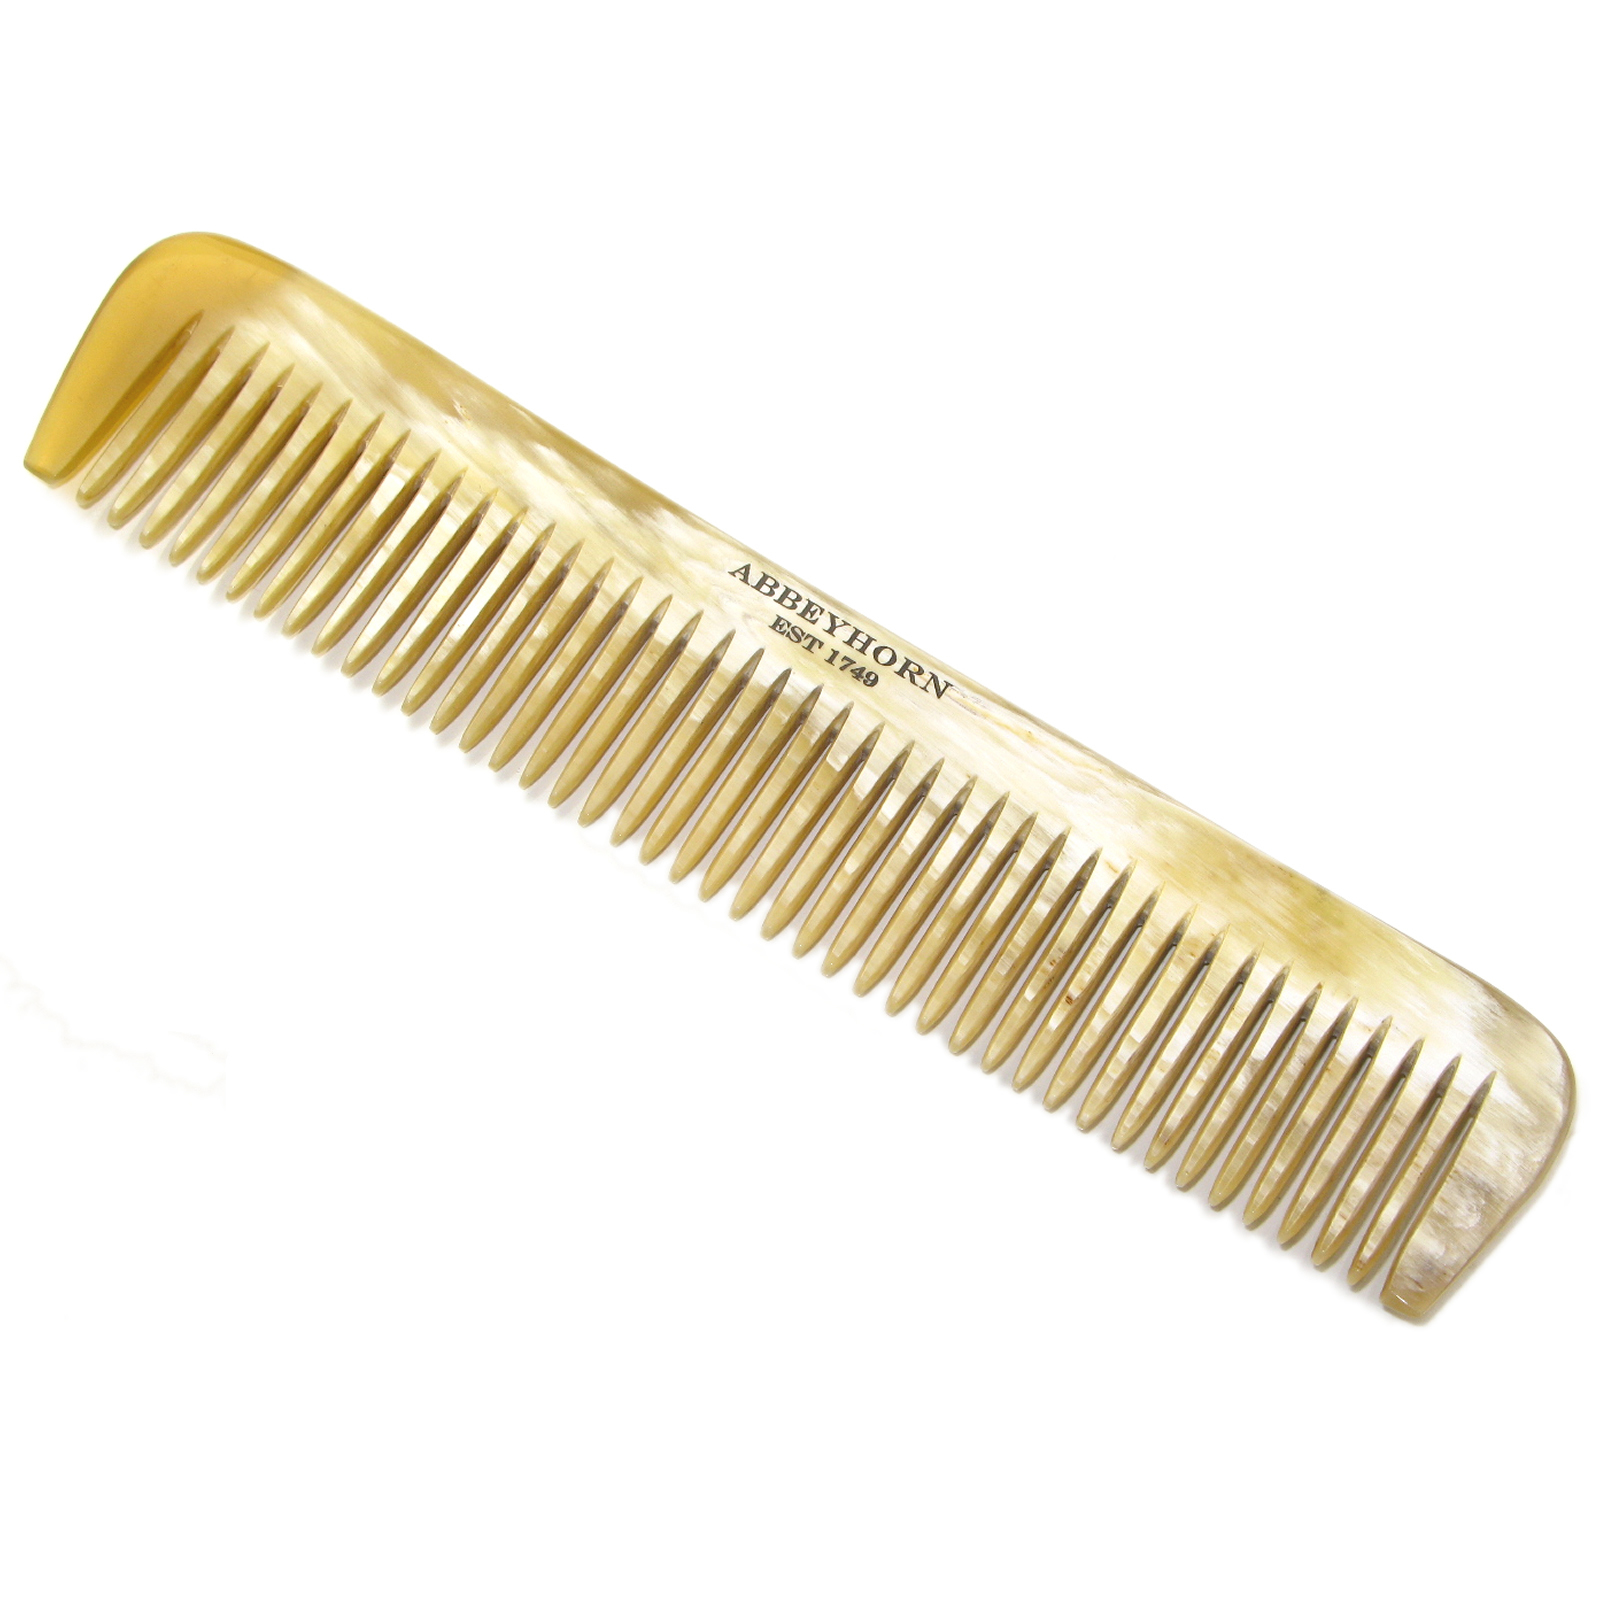 Ox Horn Single Tooth Dress Comb by Abbyhorn